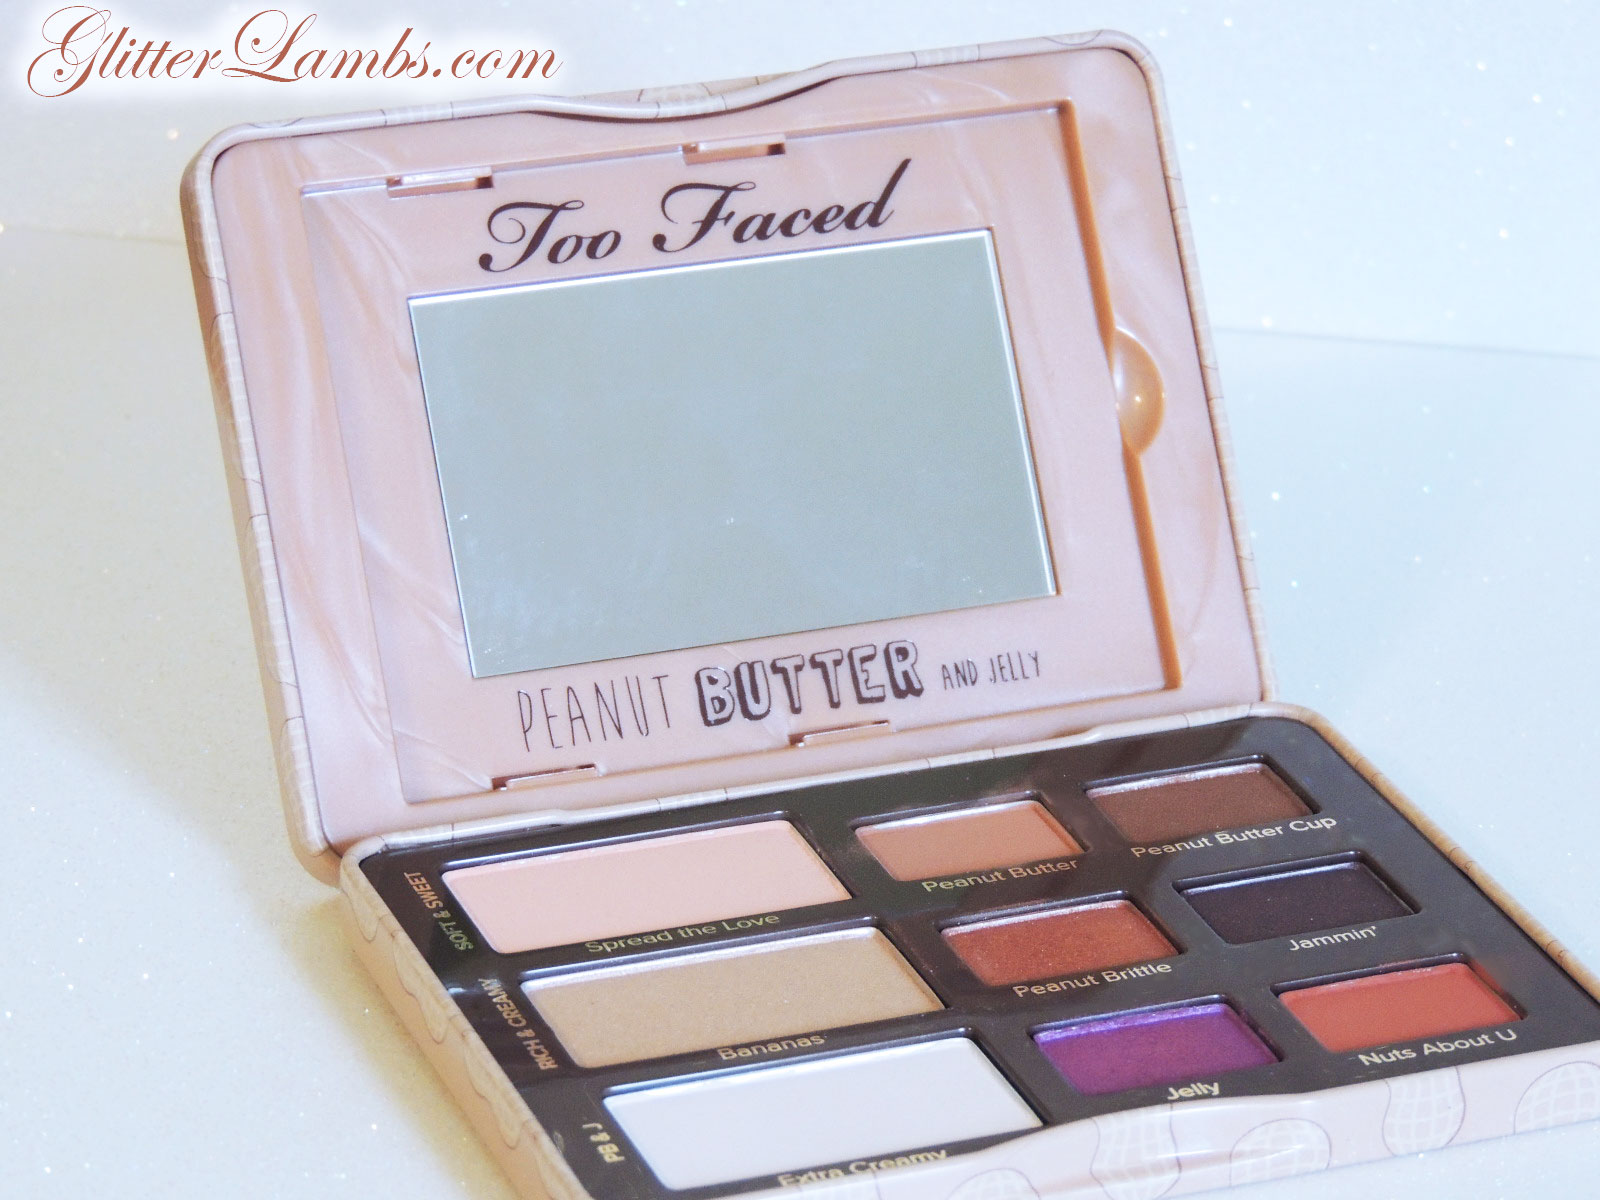 too faced peanut butter and jelly tutorial